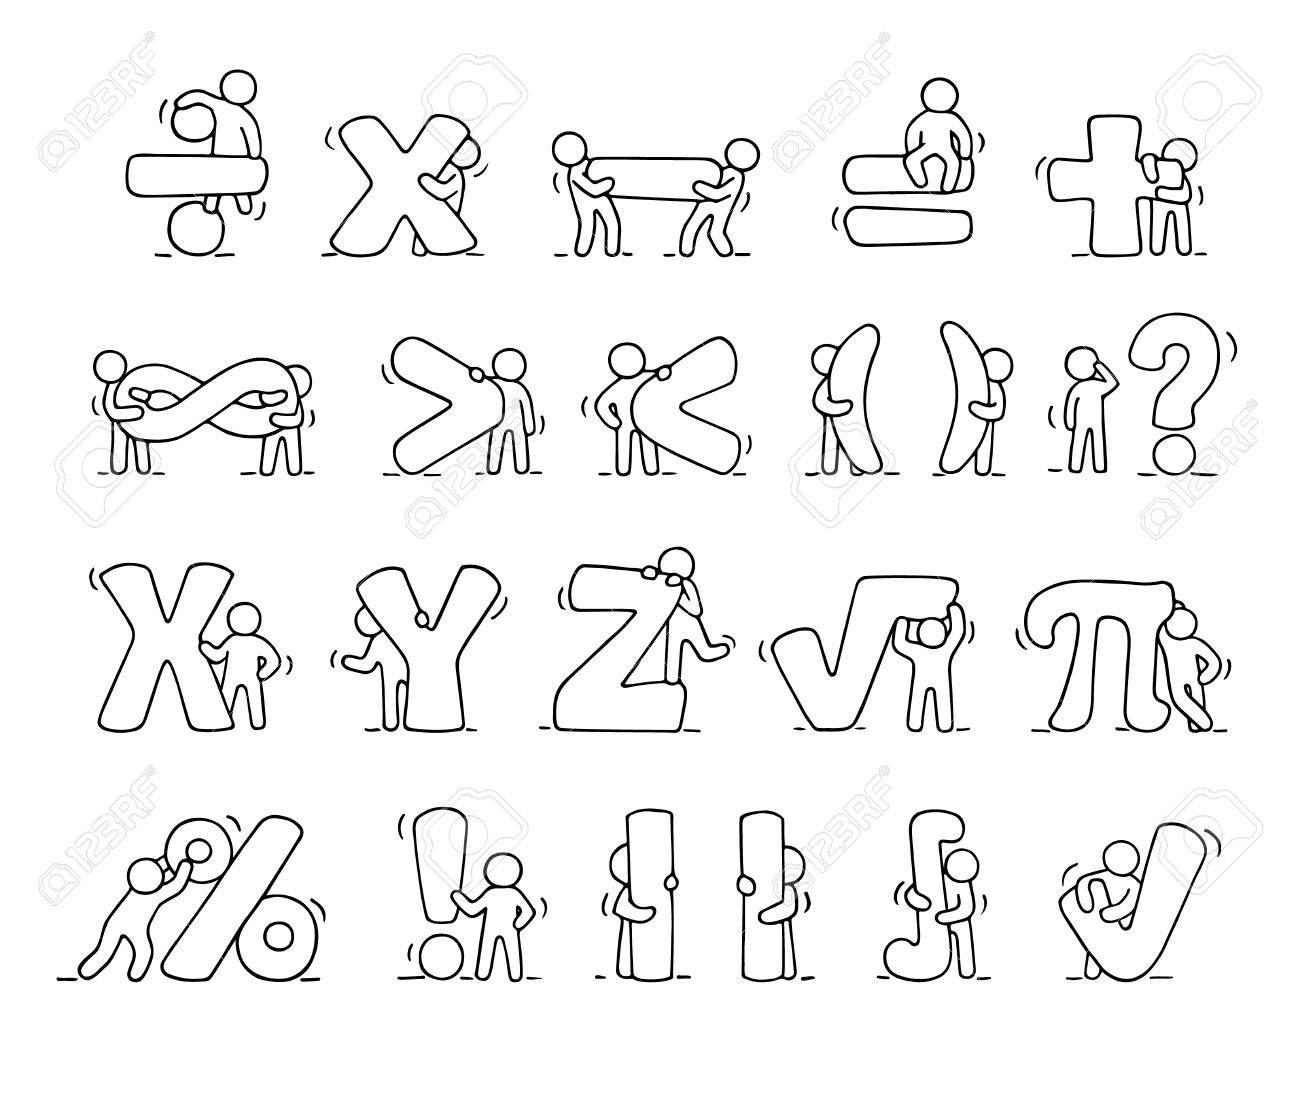 Cartoon Icons Set Of Sketch Working Little People With Mathematical